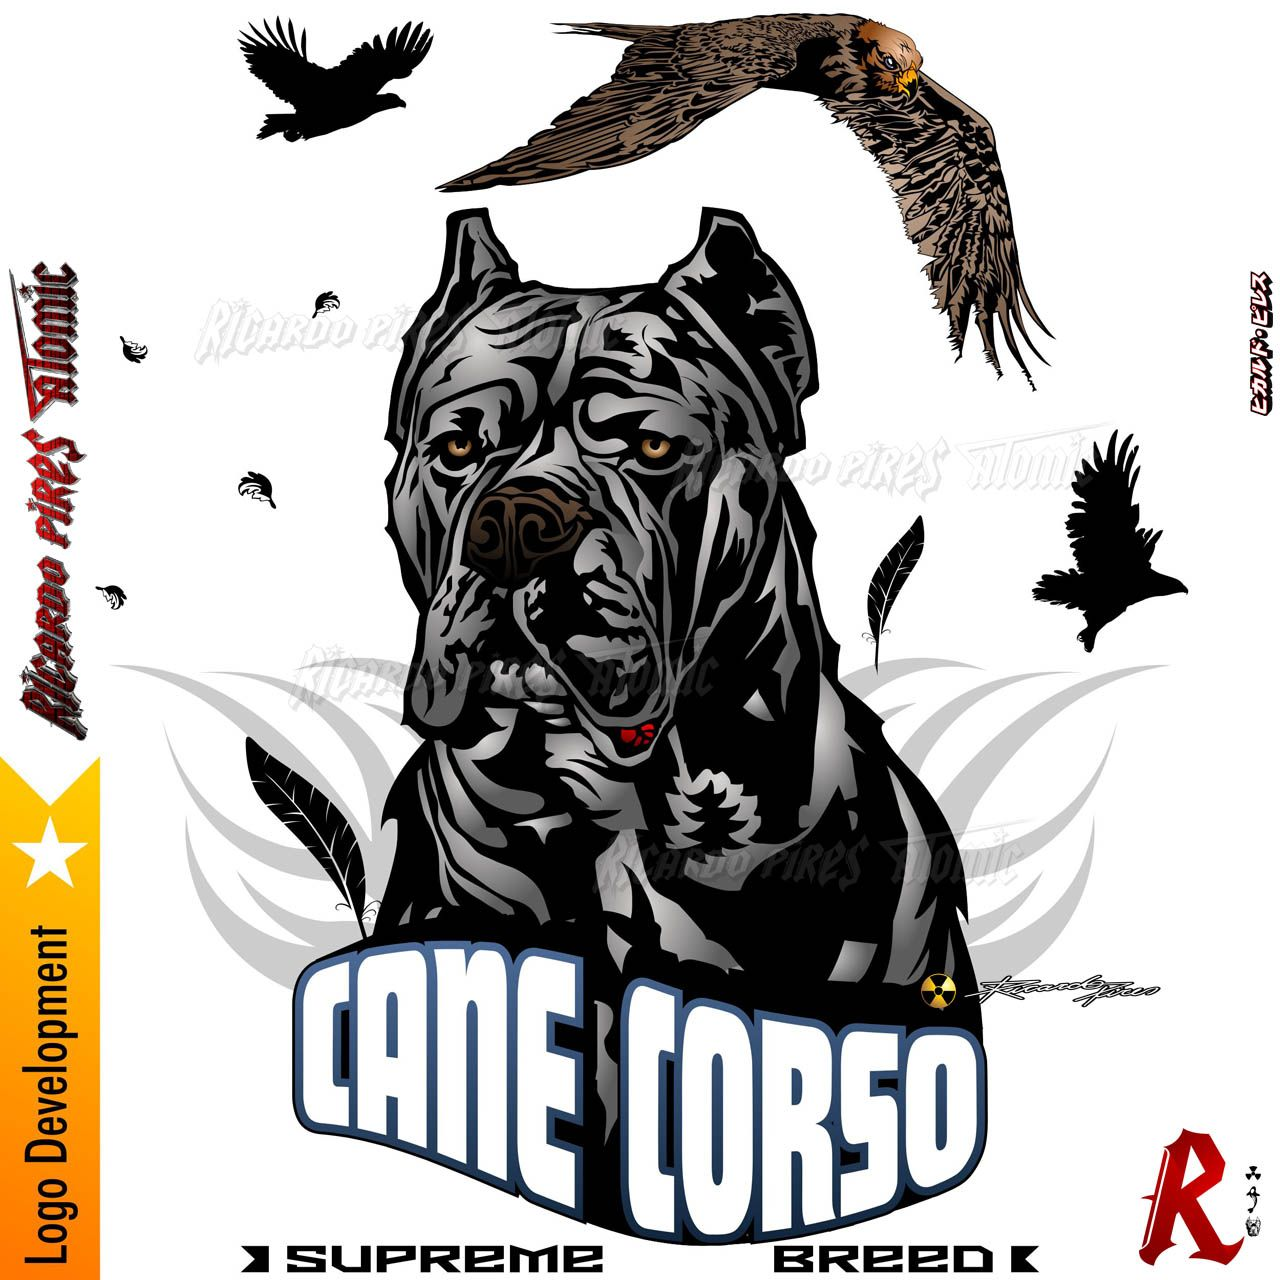 Cane Corso Supreme Breed New Cane Corso Drawings For Sale Creations